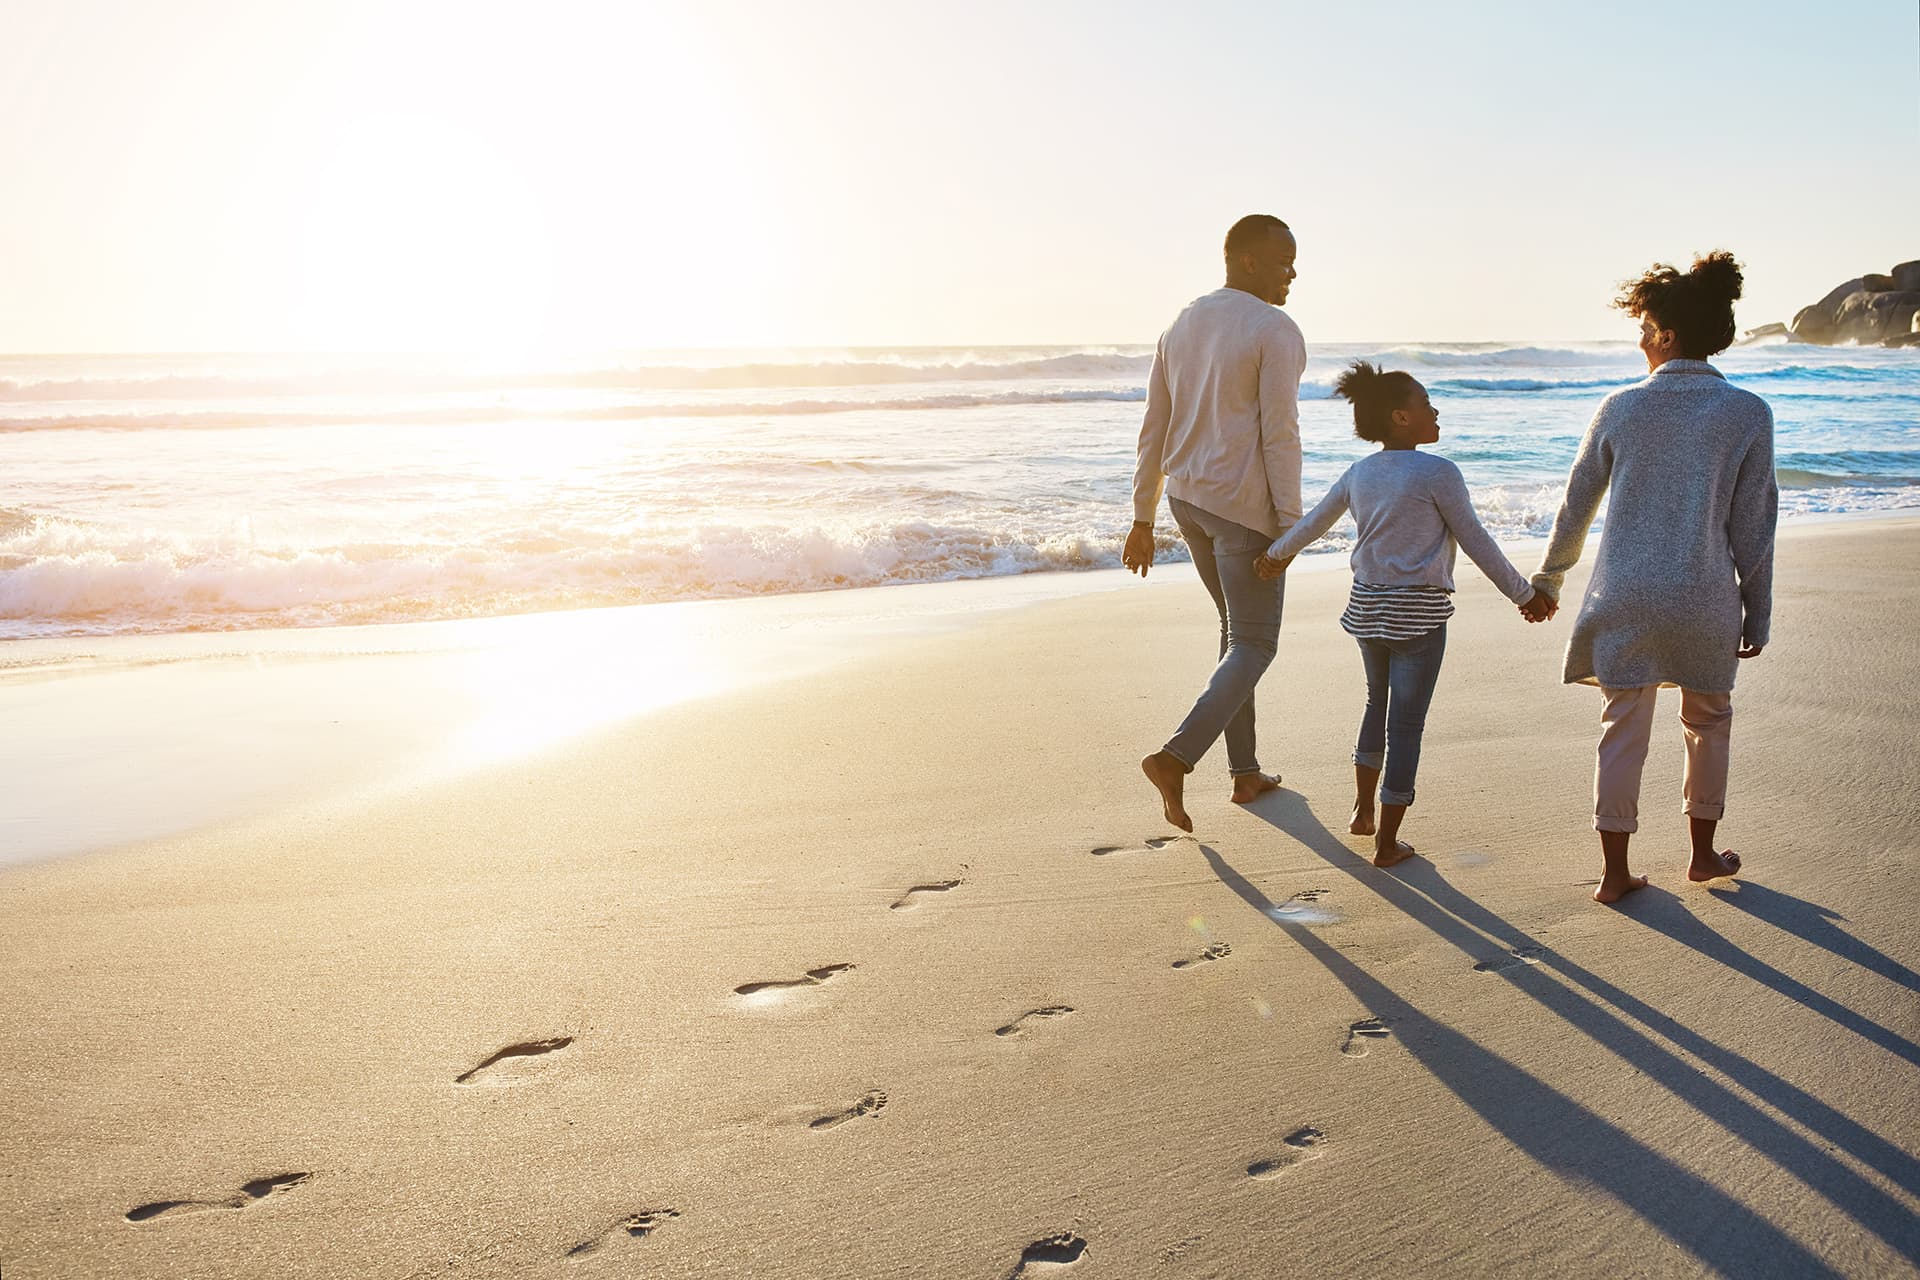 A mother, father and daughter with universal life insurance walking on a beach holding hands